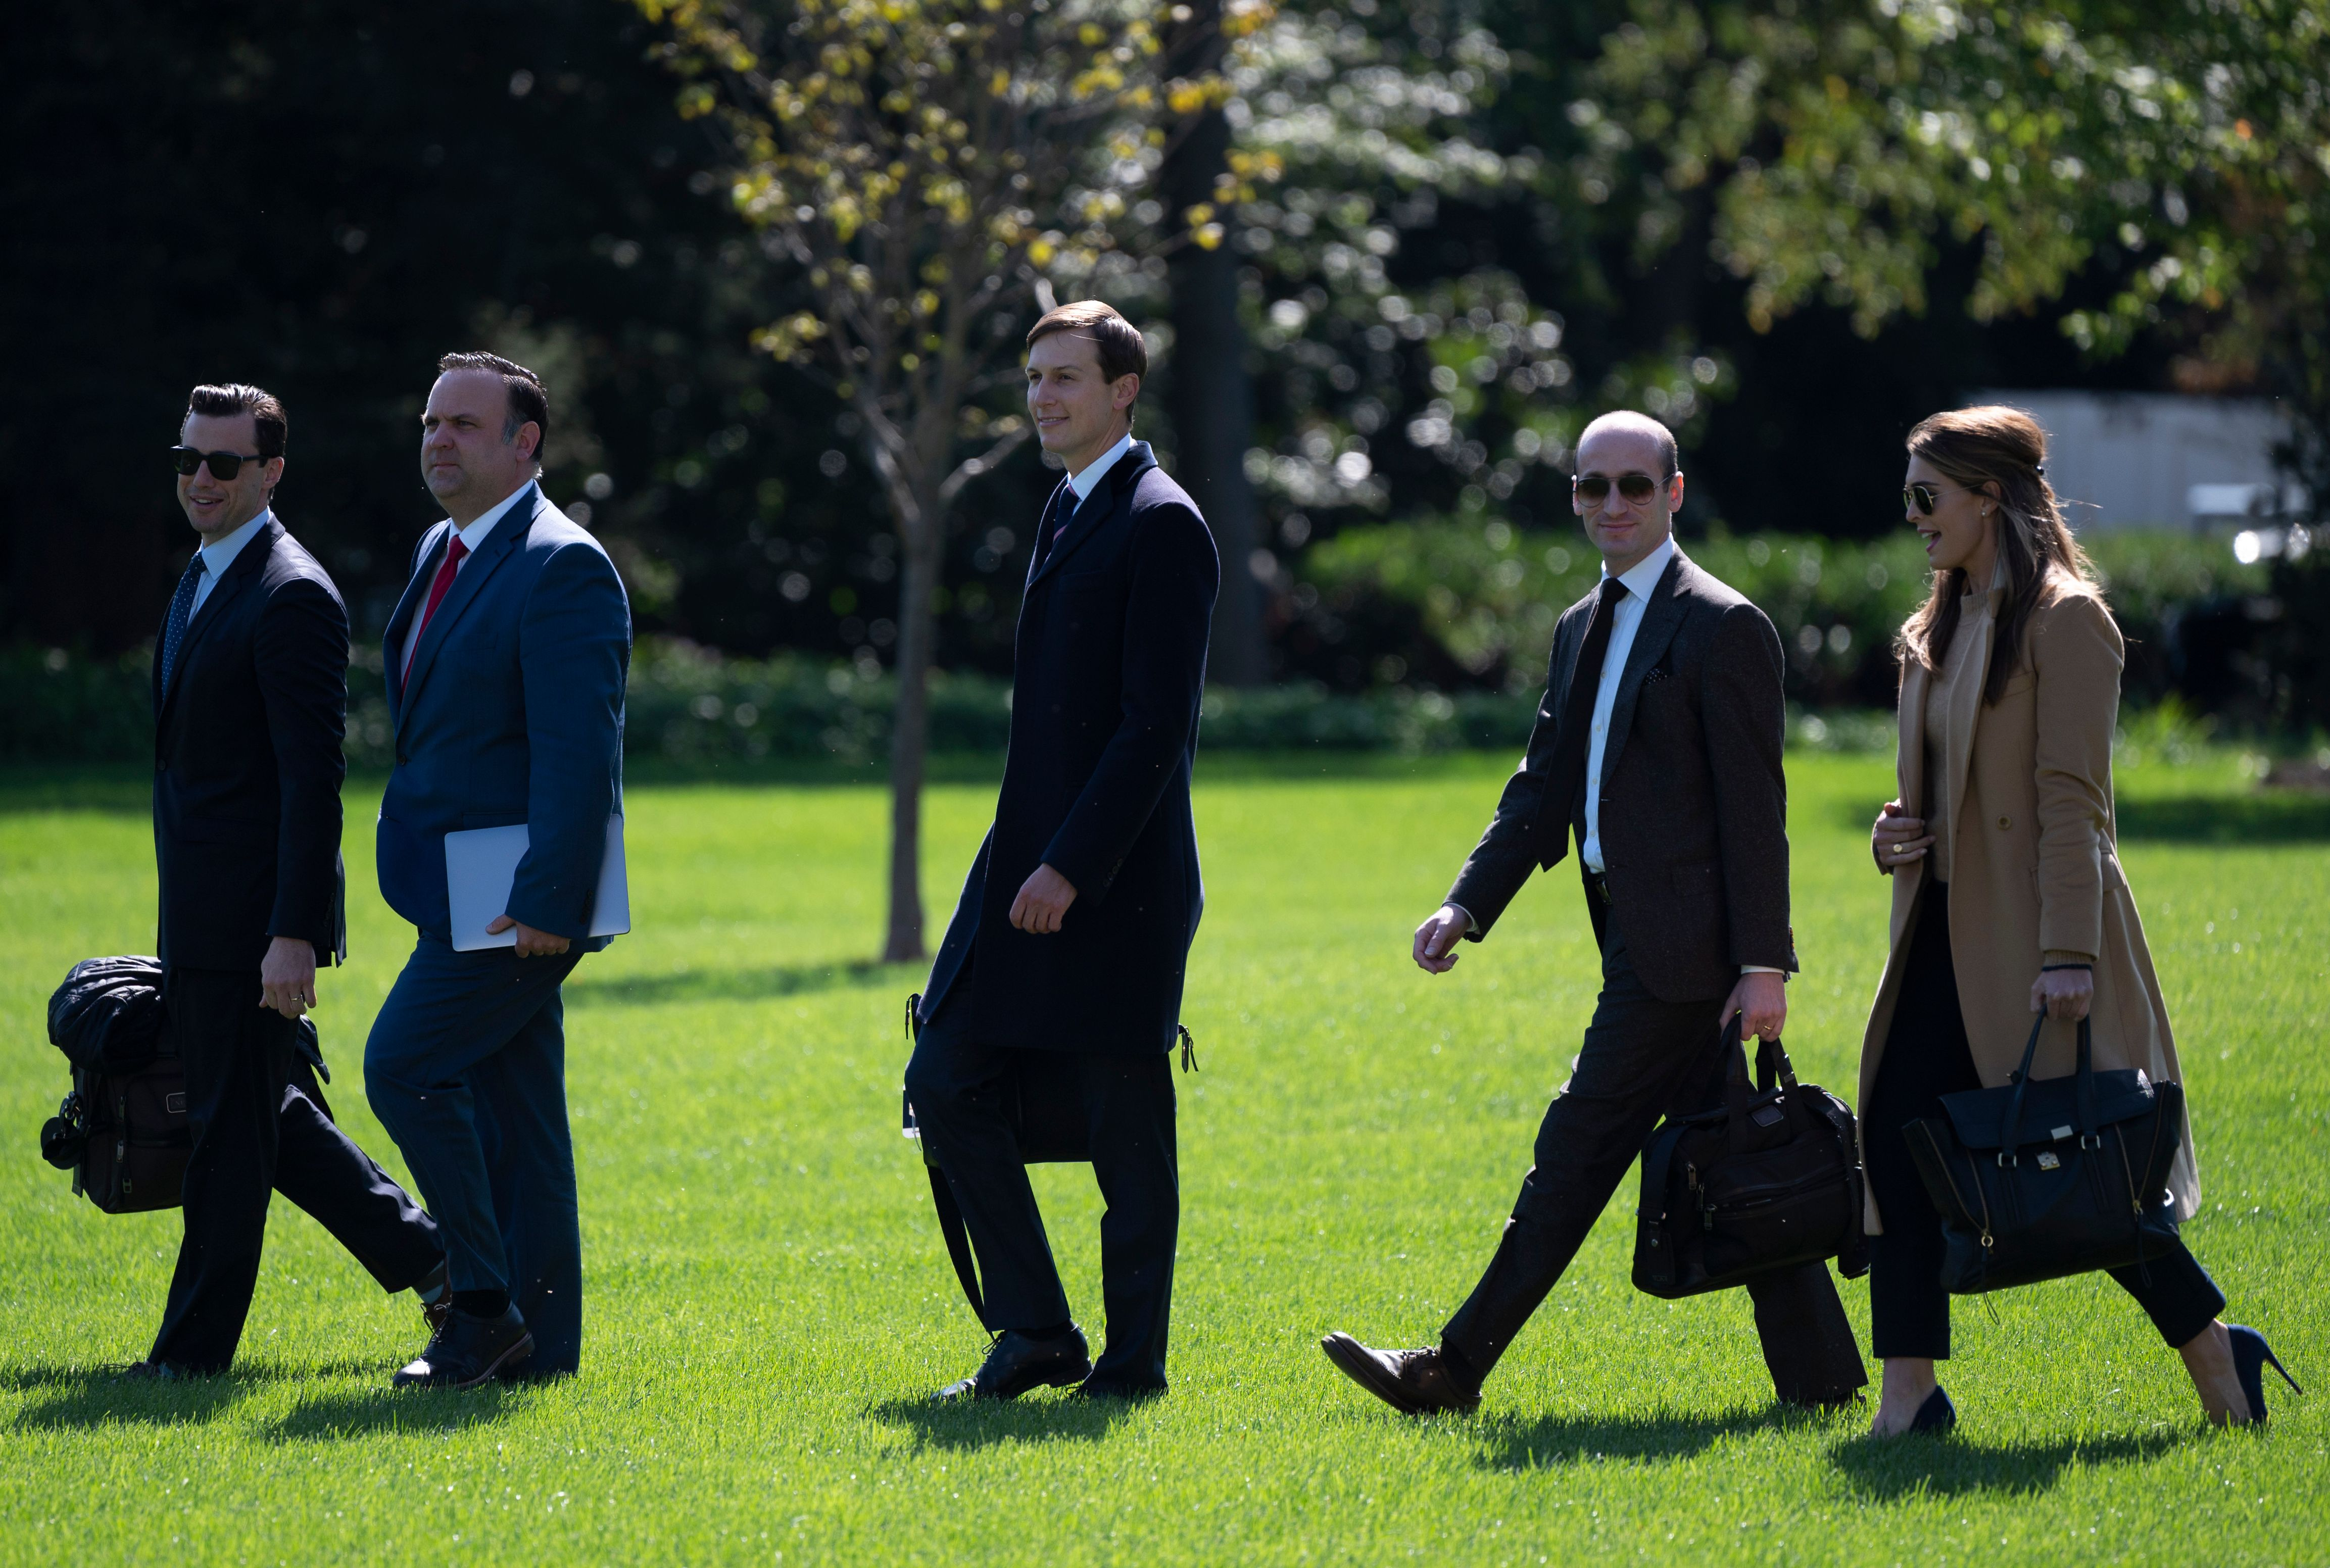 (L-R) Assistant to the President and Director of Oval Office Operations Nicholas Luna, Assistant to the President and Deputy Chief of Staff for Communications Dan Scavino, Senior Adviser to the President of the United States Jared Kushner, Senior Adviser to the President Stephen Miller, and Counselor to the President Hope Hicks walk to Marine One to depart from the South Lawn of the White House in Washington, DC, on September 30, 2020.